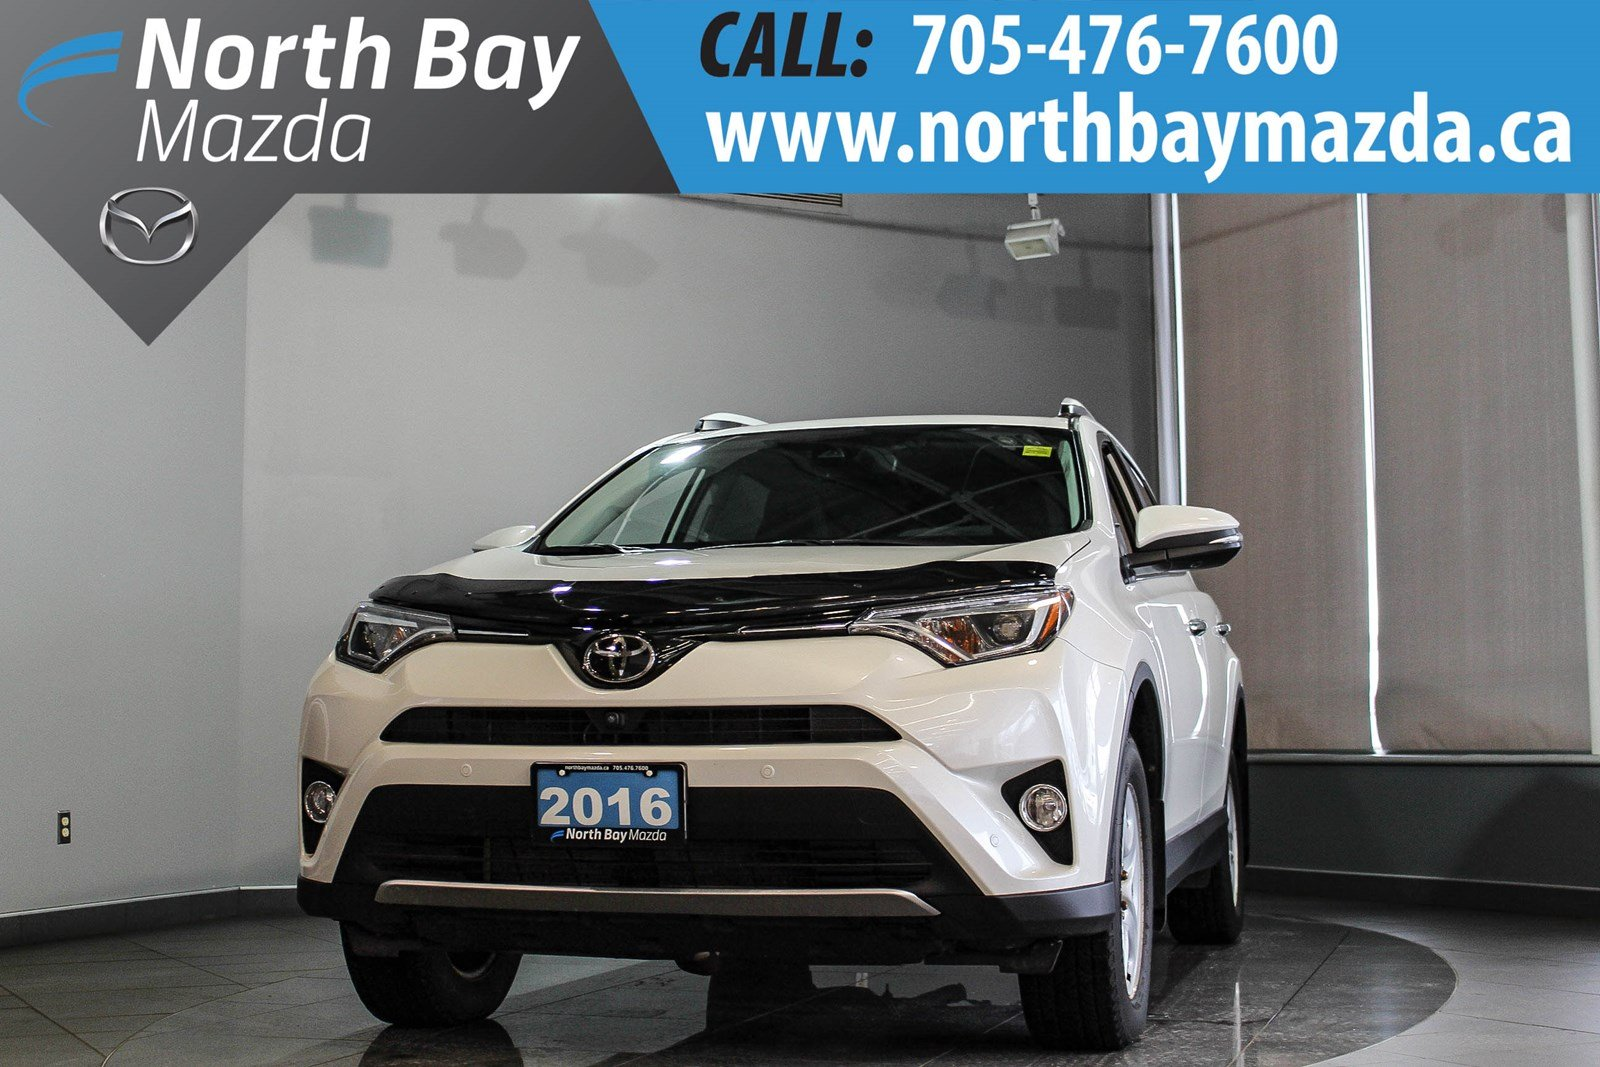 Pre-Owned 2016 Toyota RAV4 Limited with Clean CarProof, One Owner, 2 Sets of Tires!